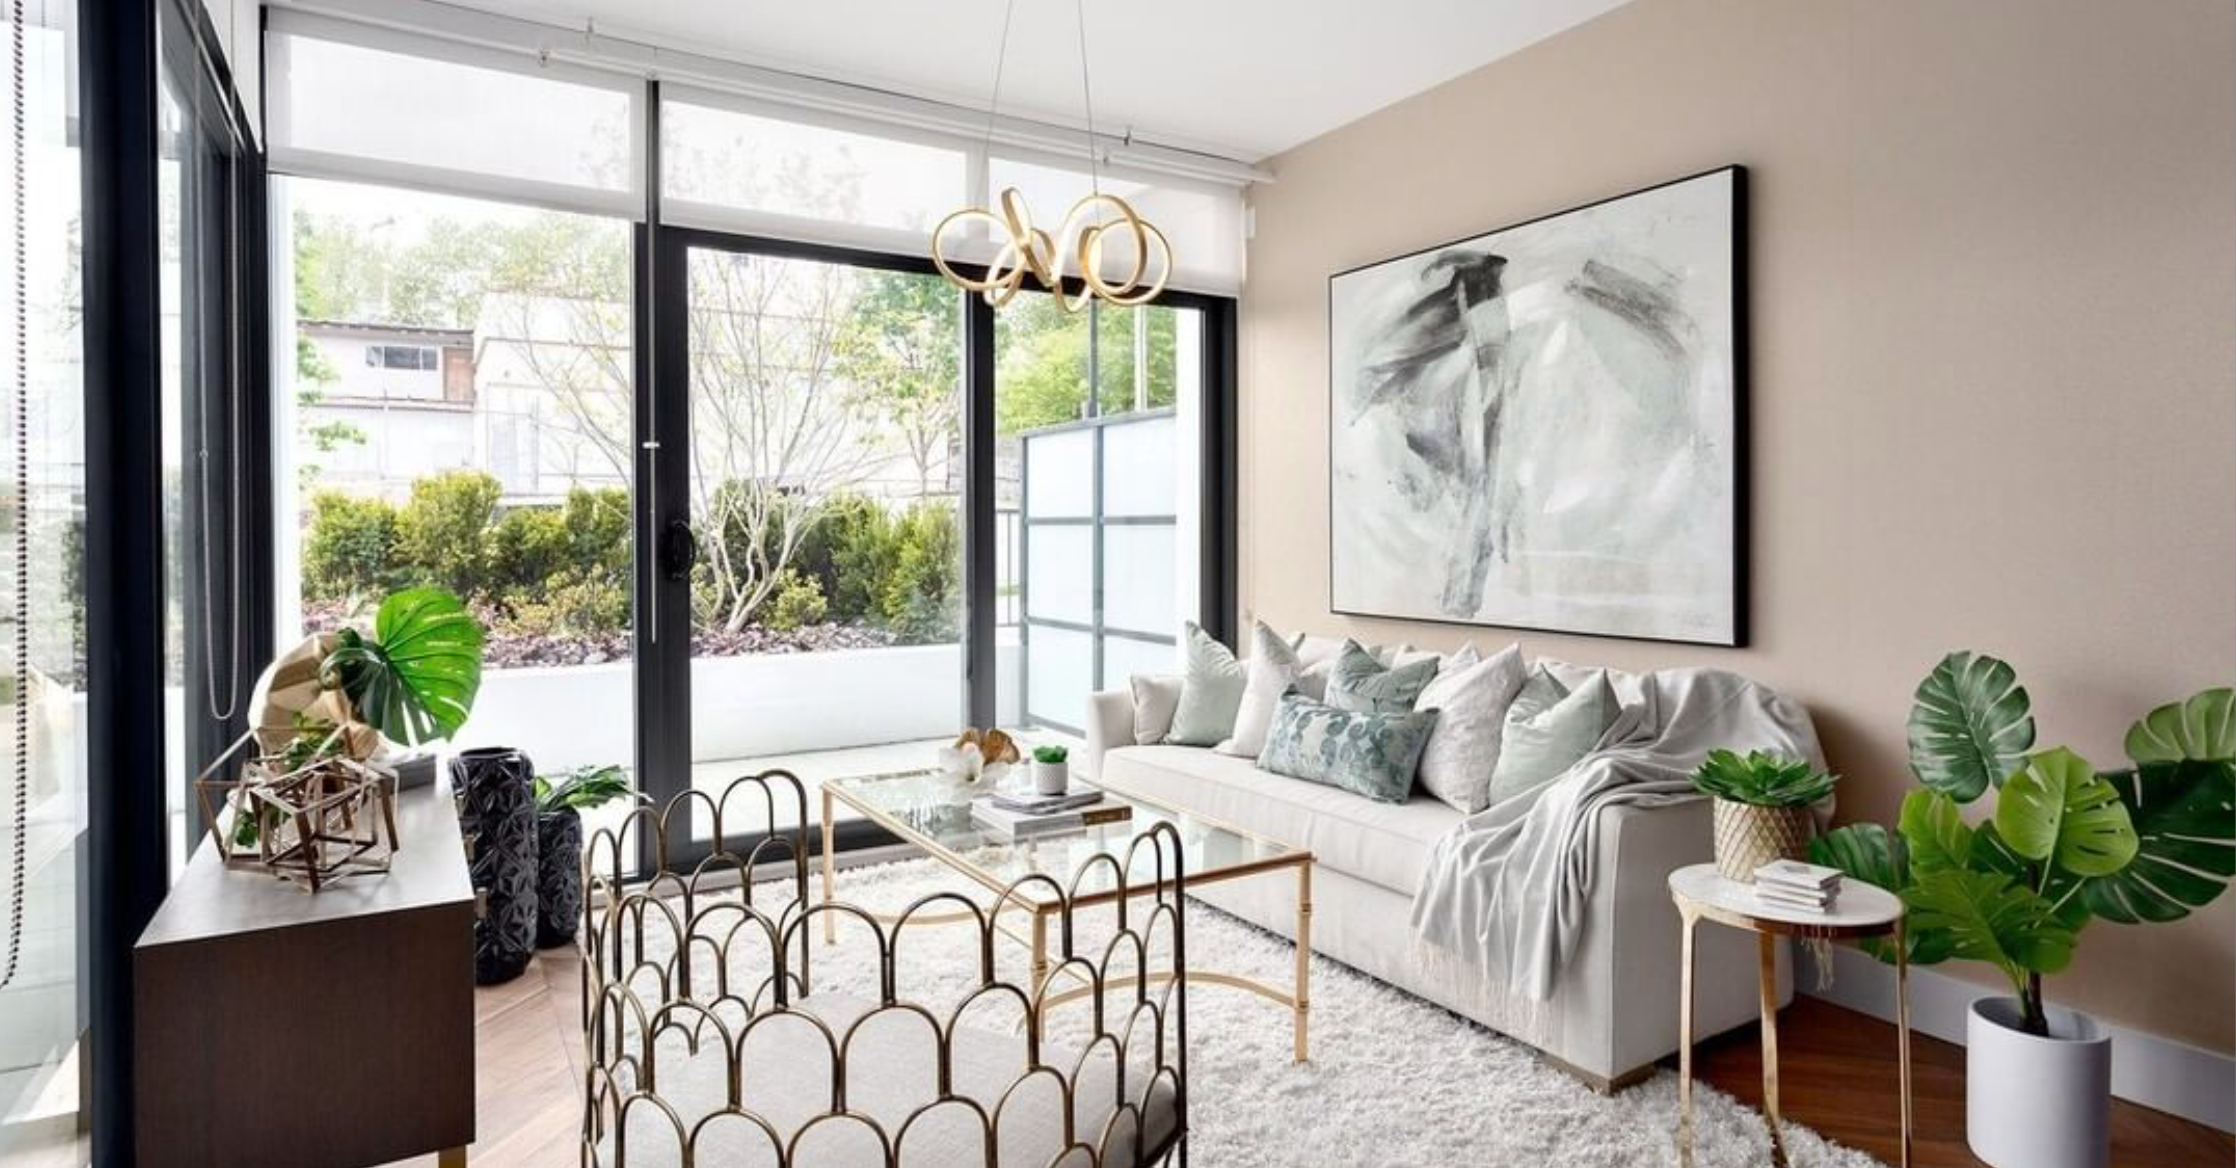 Had to share this modern, glam, and nature-inspired living room design by @kaluinteriors. Pulling those elements together is the Synergy Chandelier from @KuzcoLighting; twirling beams of light in the air and finished in a beautiful brass. #kuzcolighting #glaminteriors #glaminterior1 #glamlivingroom #modernlighting #modernlivingroom #livingroomideas #livingroominspiration #livingroomstyle #livingroomgoals #livingroomstyling #livingroomlighting #modernlighting #lightinginspiration